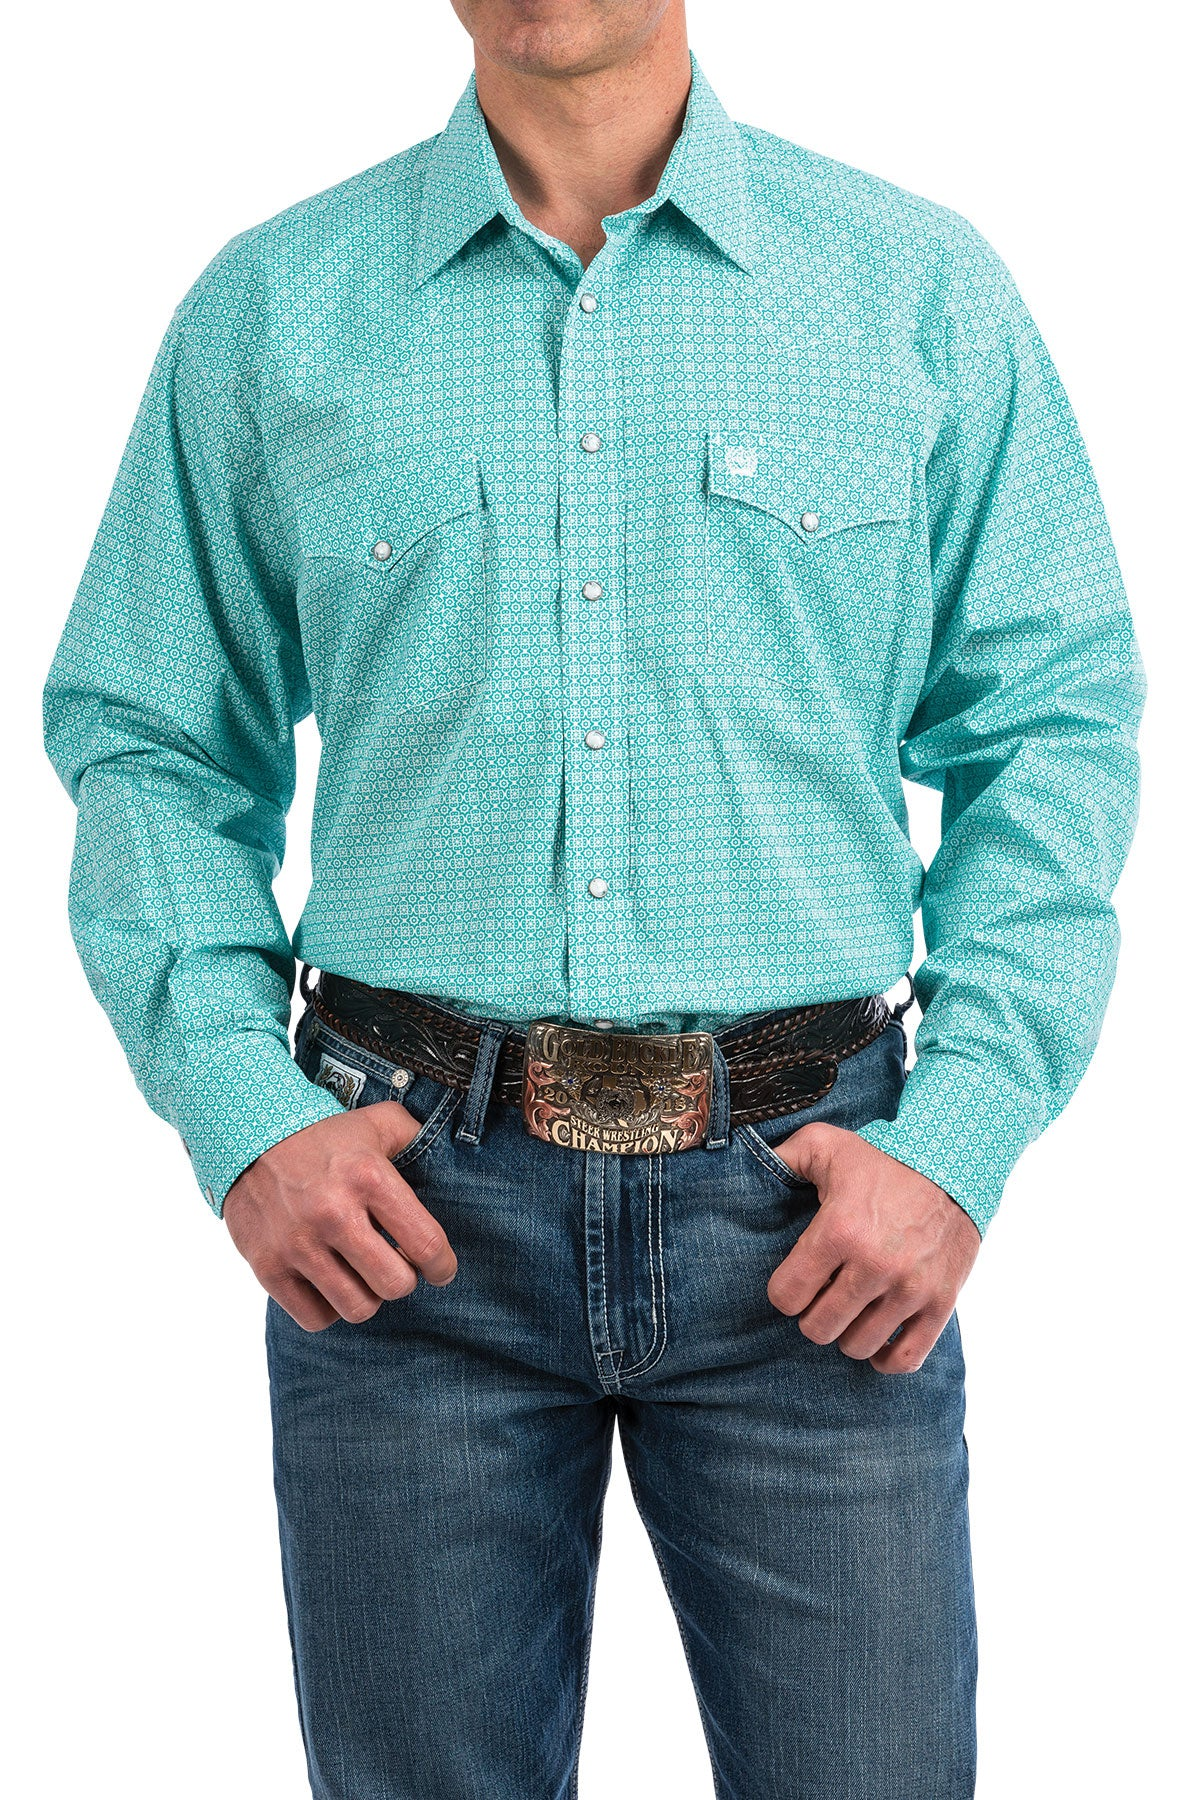 Cinch Long Sleeve Turquoise Print Shirt